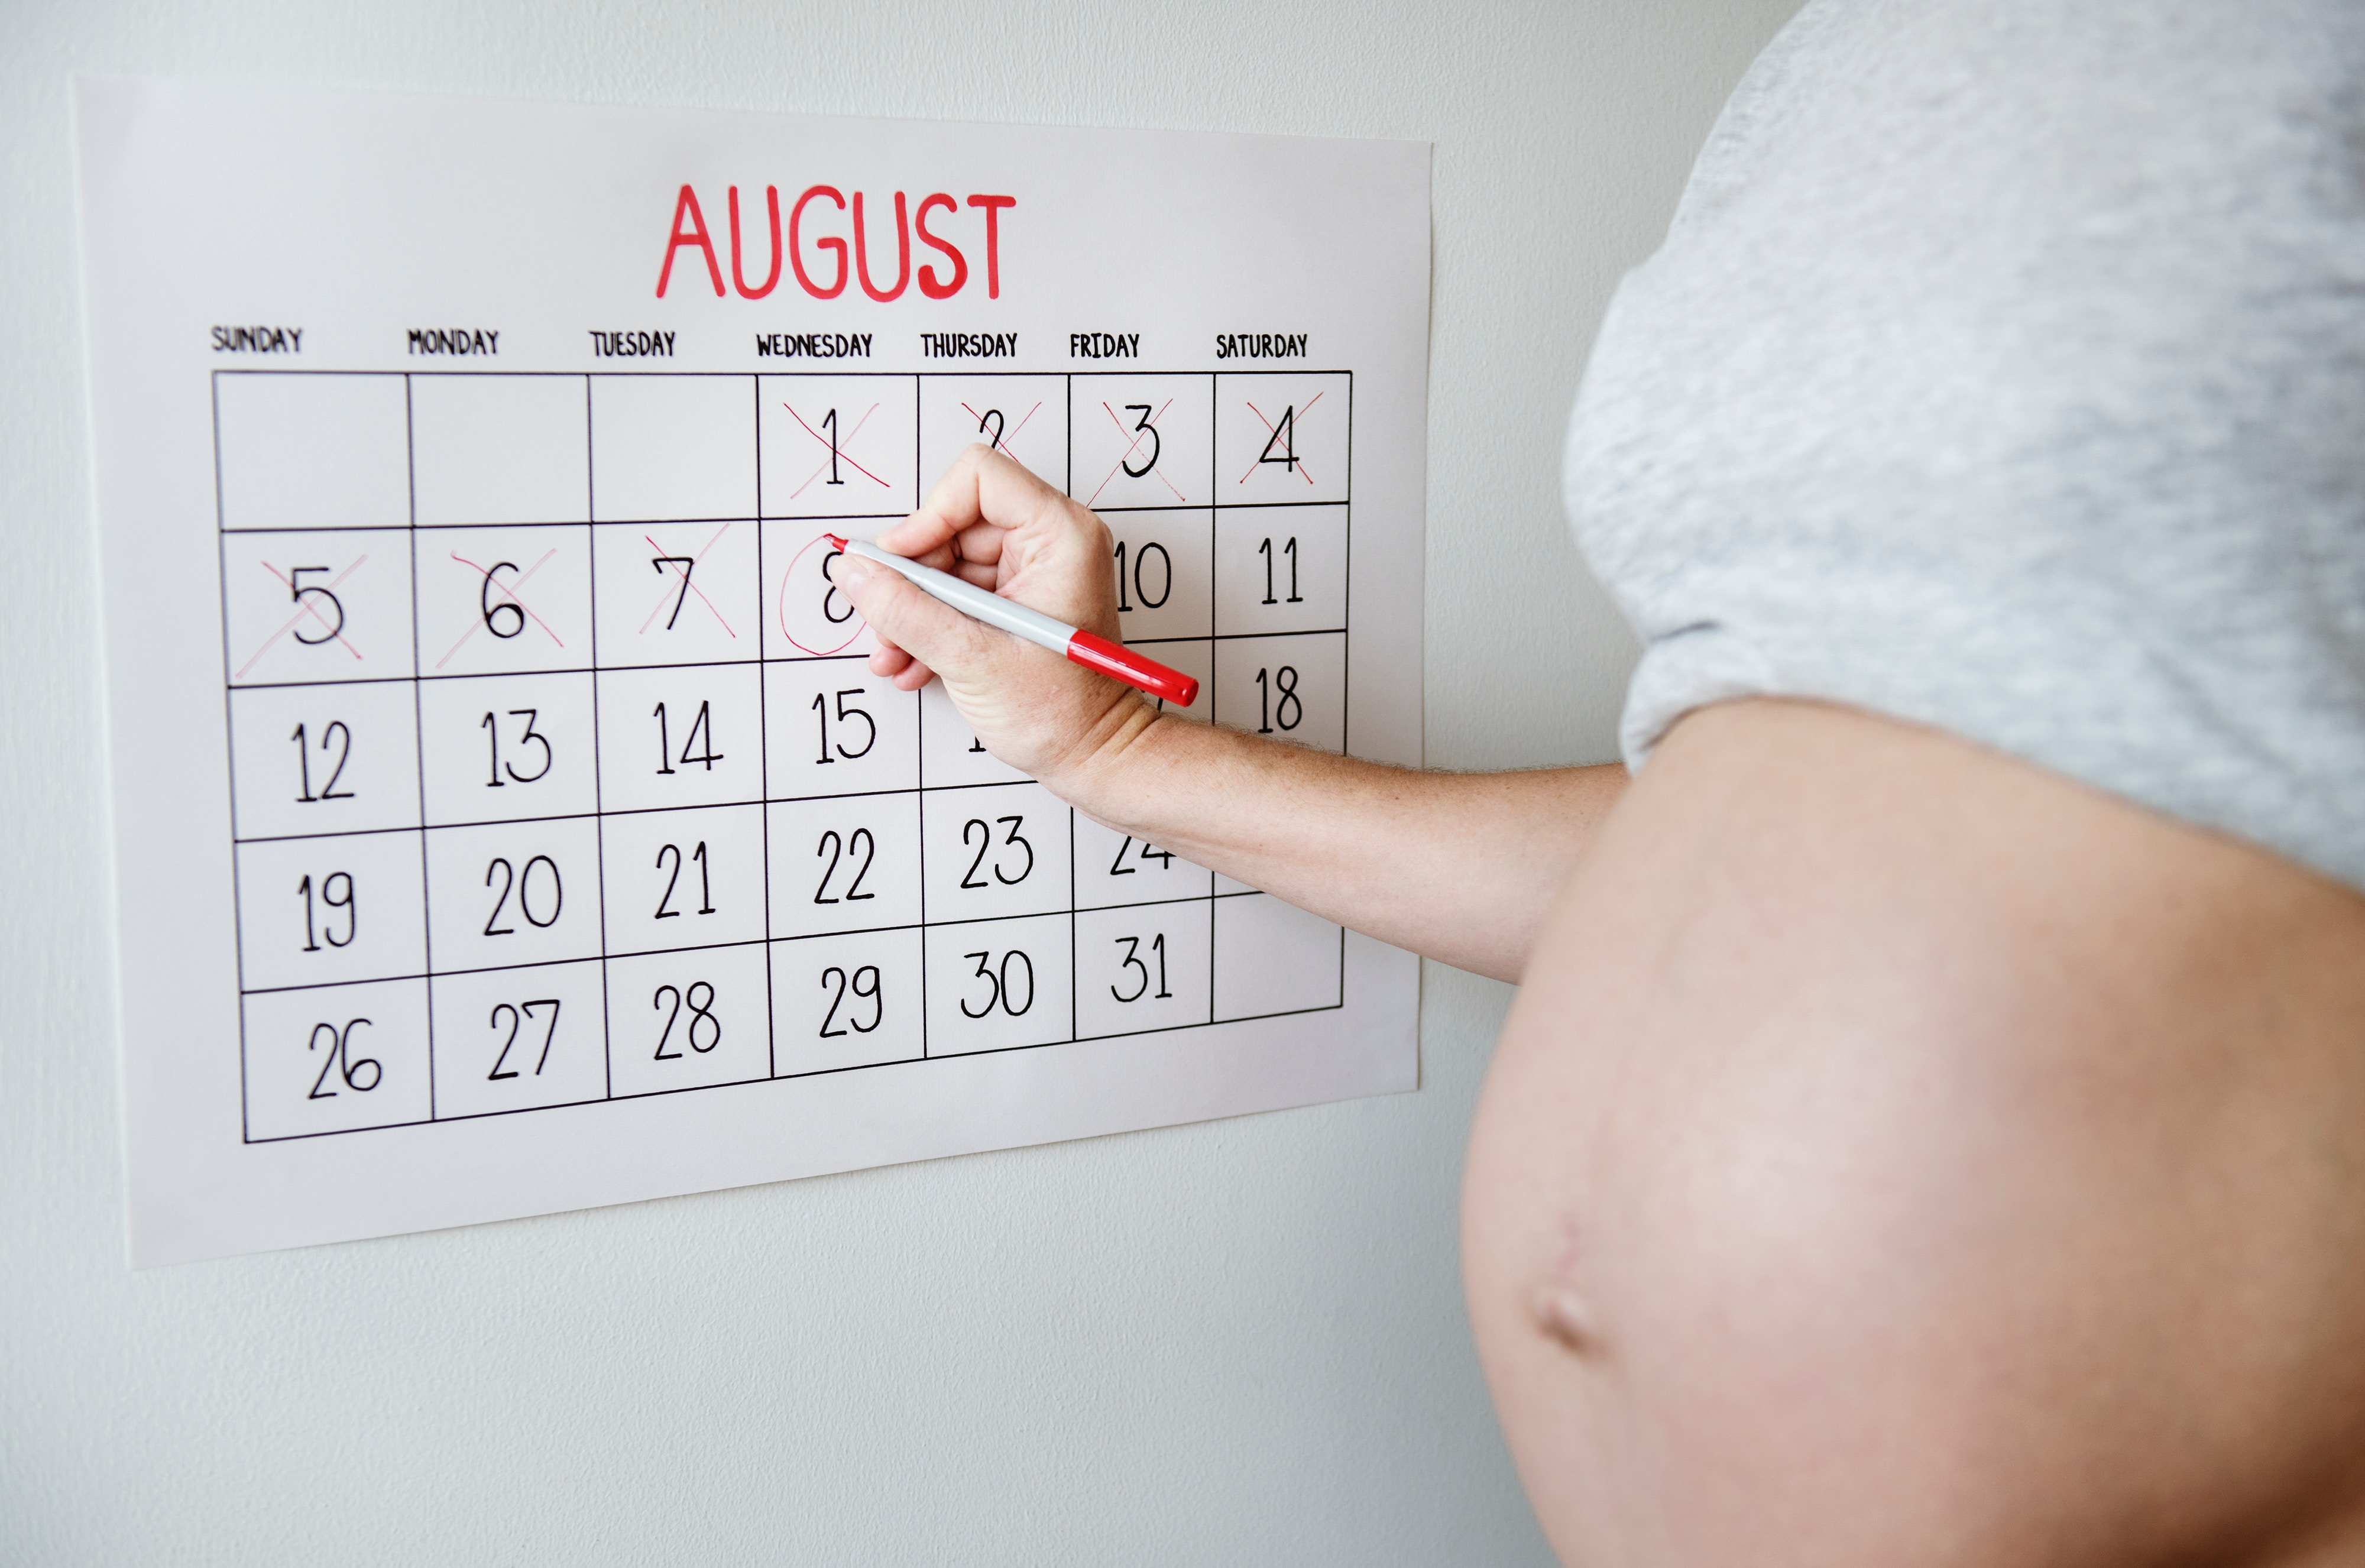 pregnant woman counting down the days